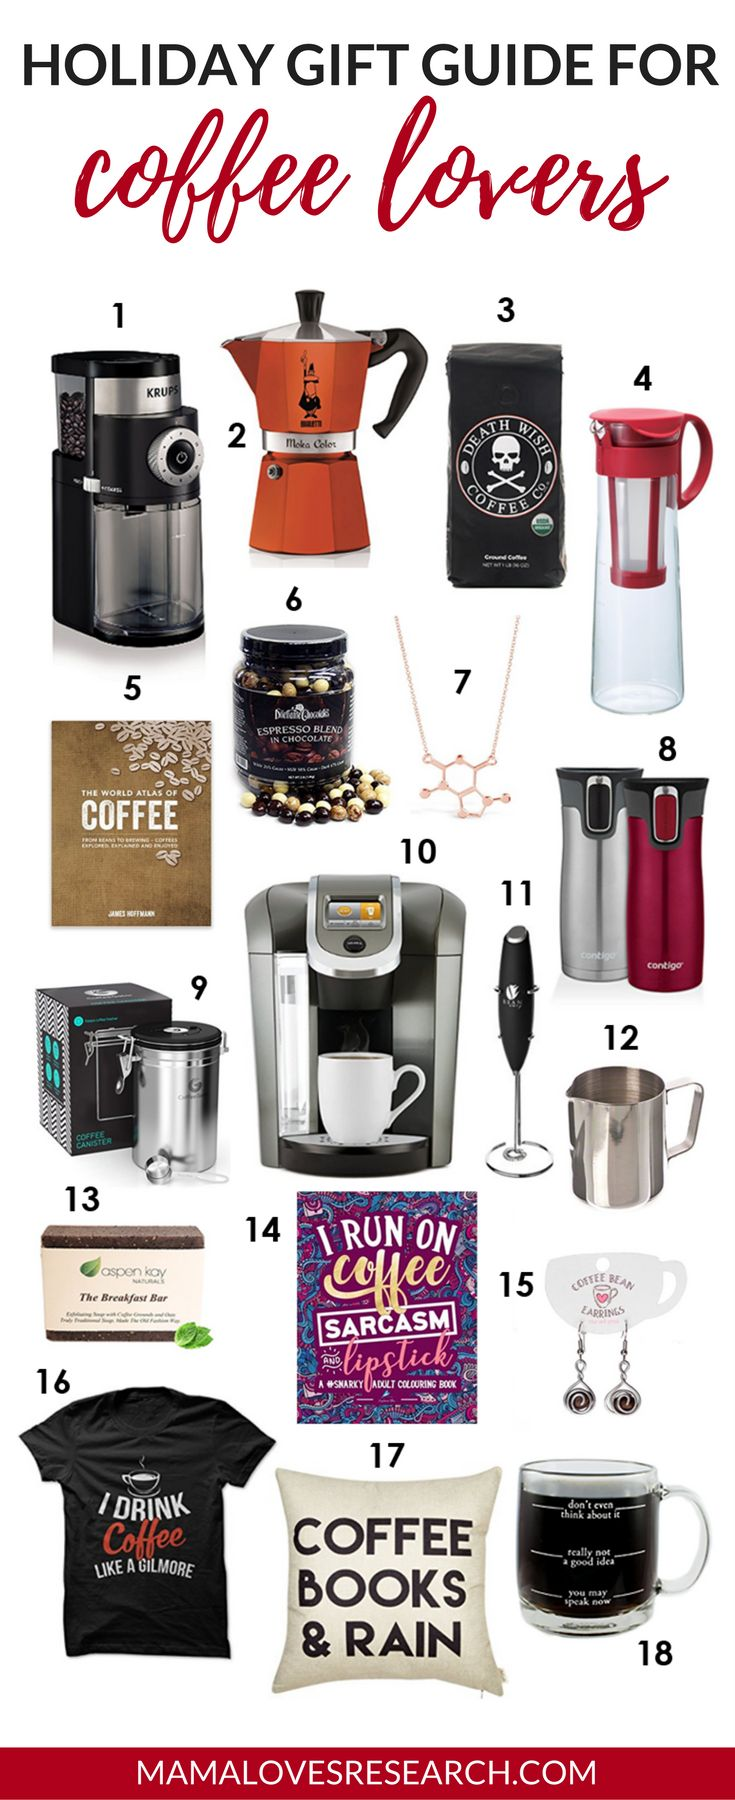 Holiday Gift Guide for Coffee Lovers - Mama Loves Research